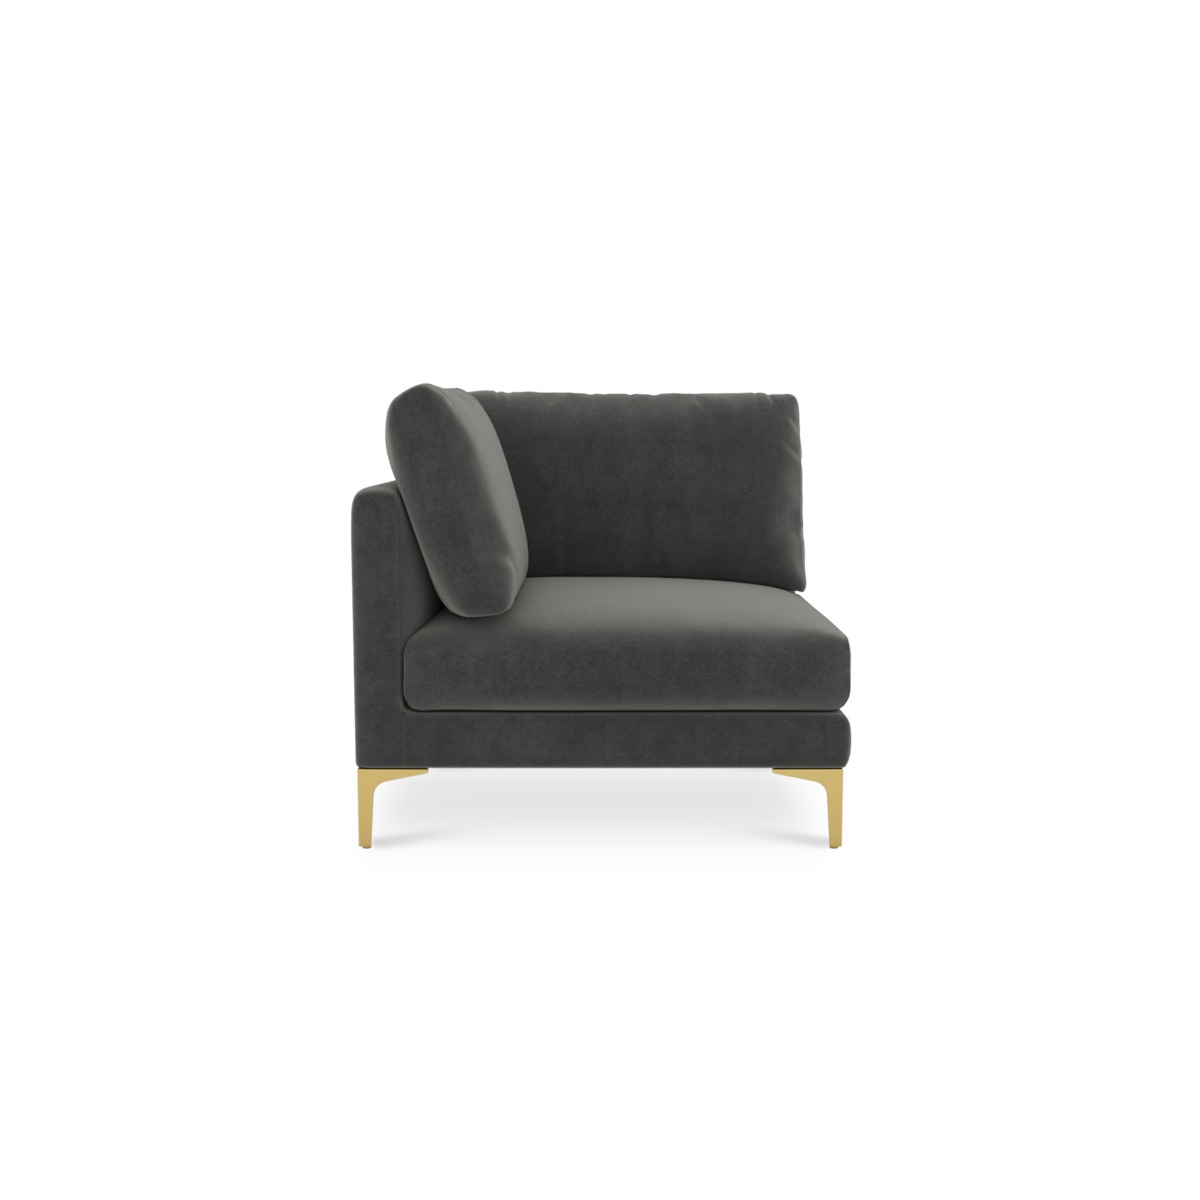 Adams Corner Sofa, Moon Grey (Brass Leg)